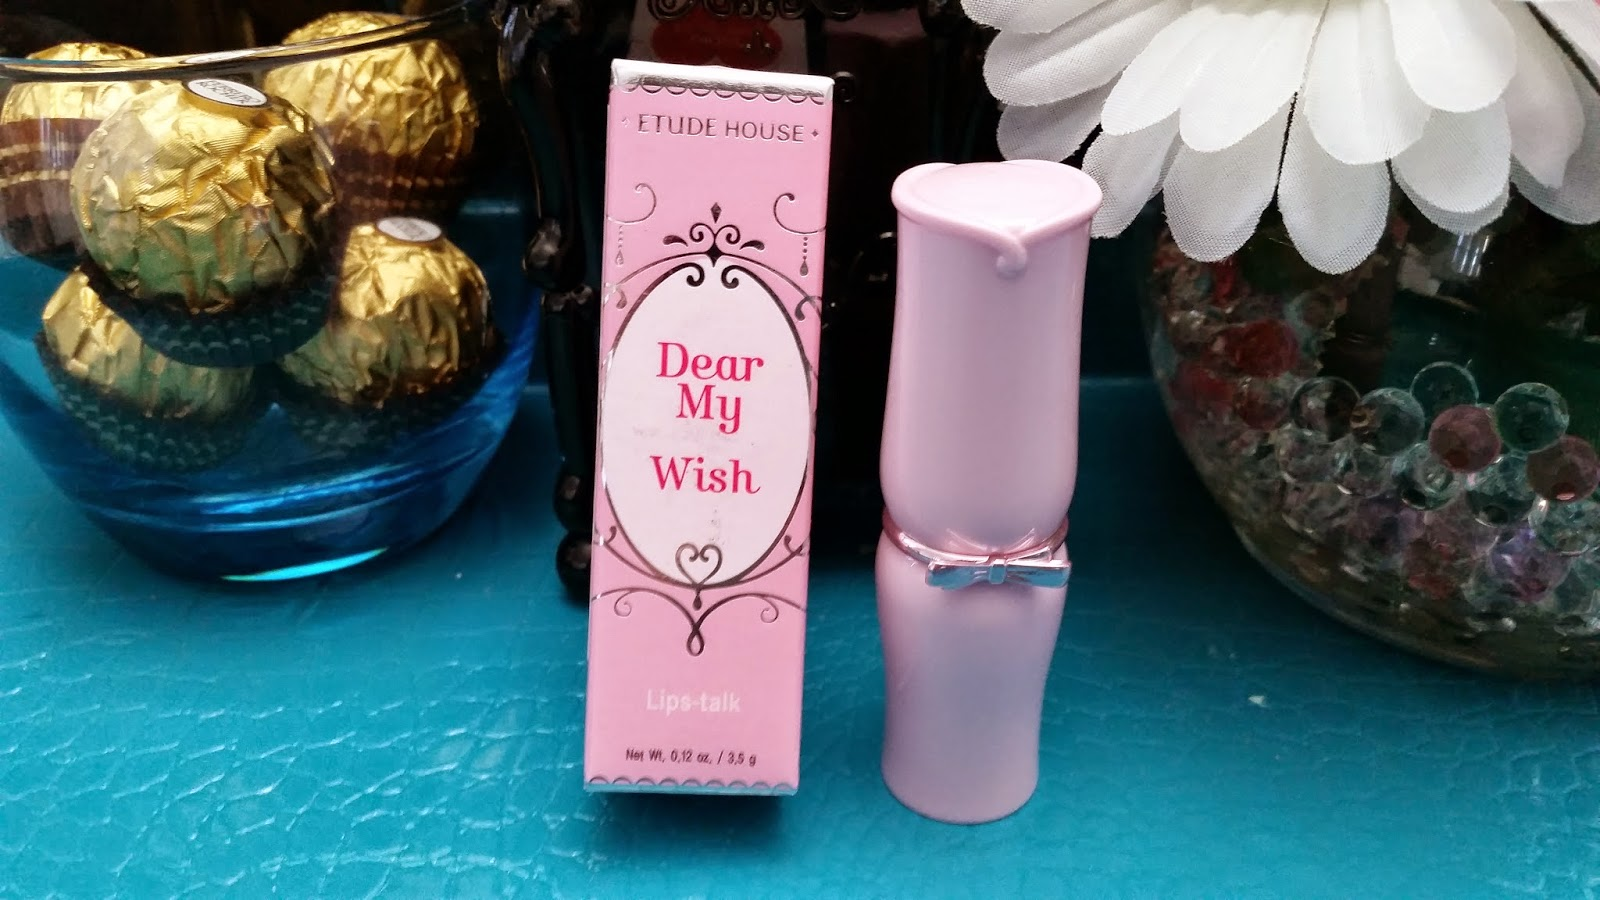 Etude House Dear My Wish Lips-Talk Lipstick Review